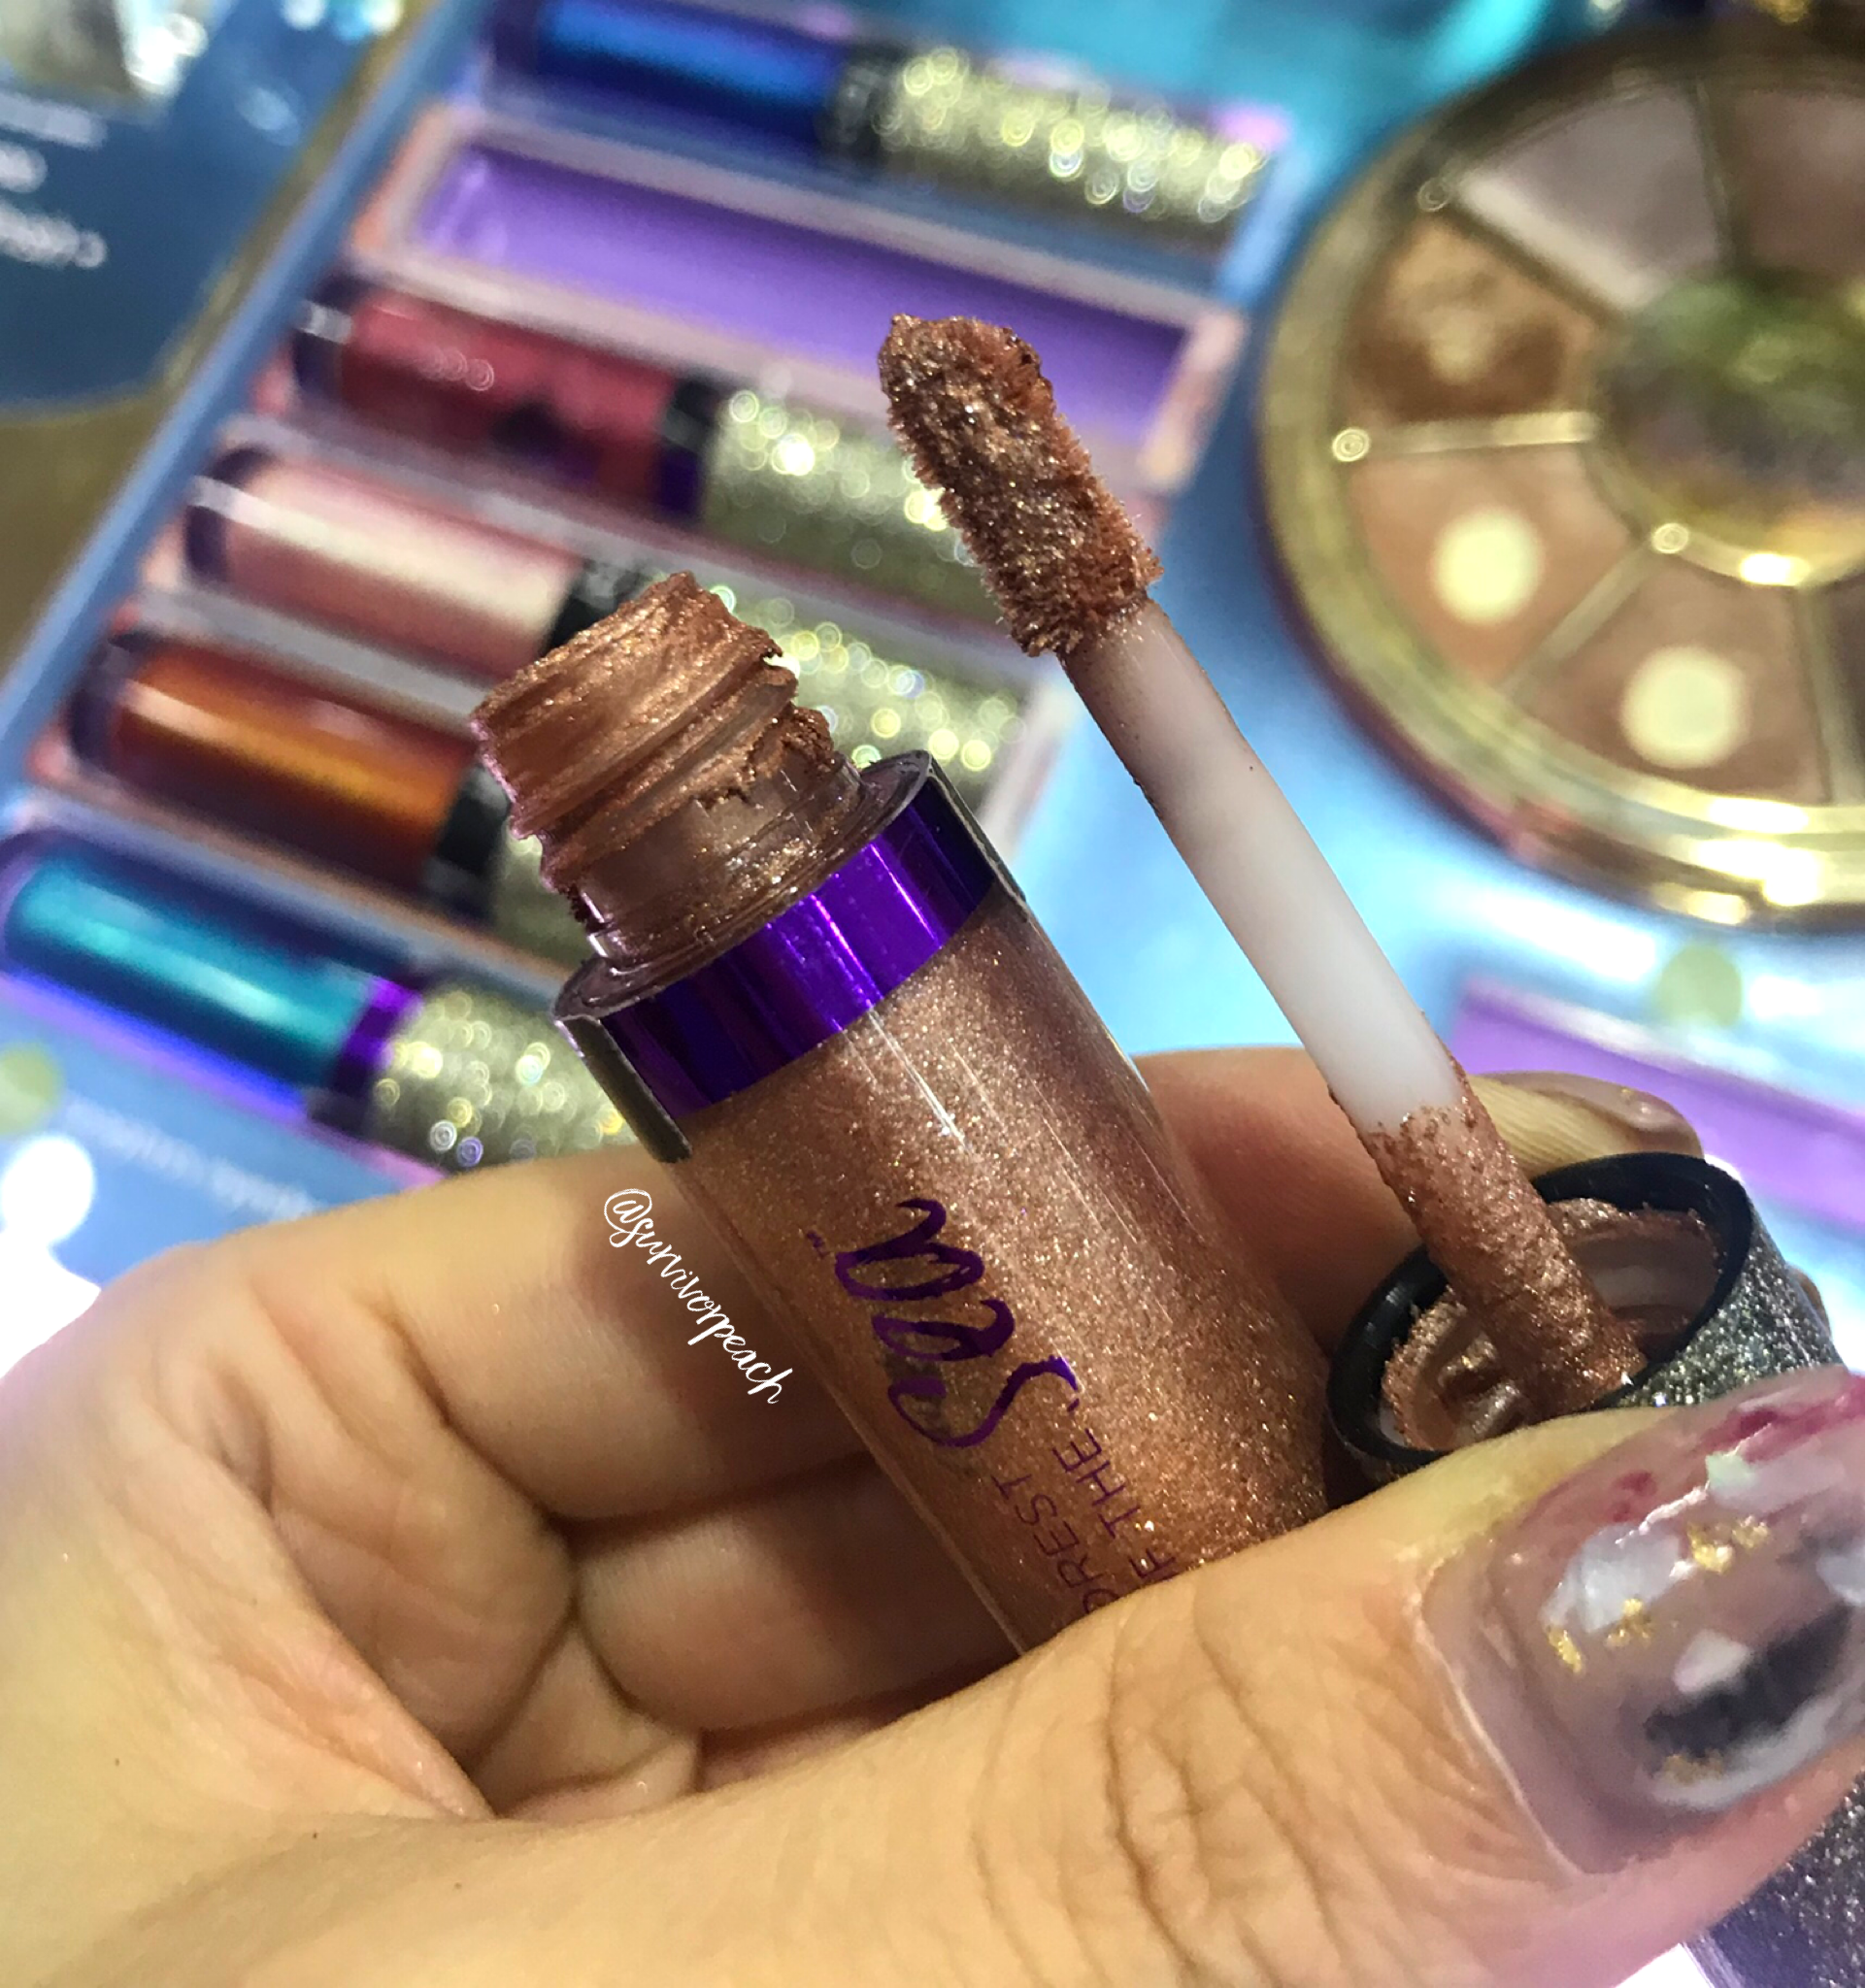 Tarte Rainforest of the Sea Seaglass Eyeshadow in shade Suite Life